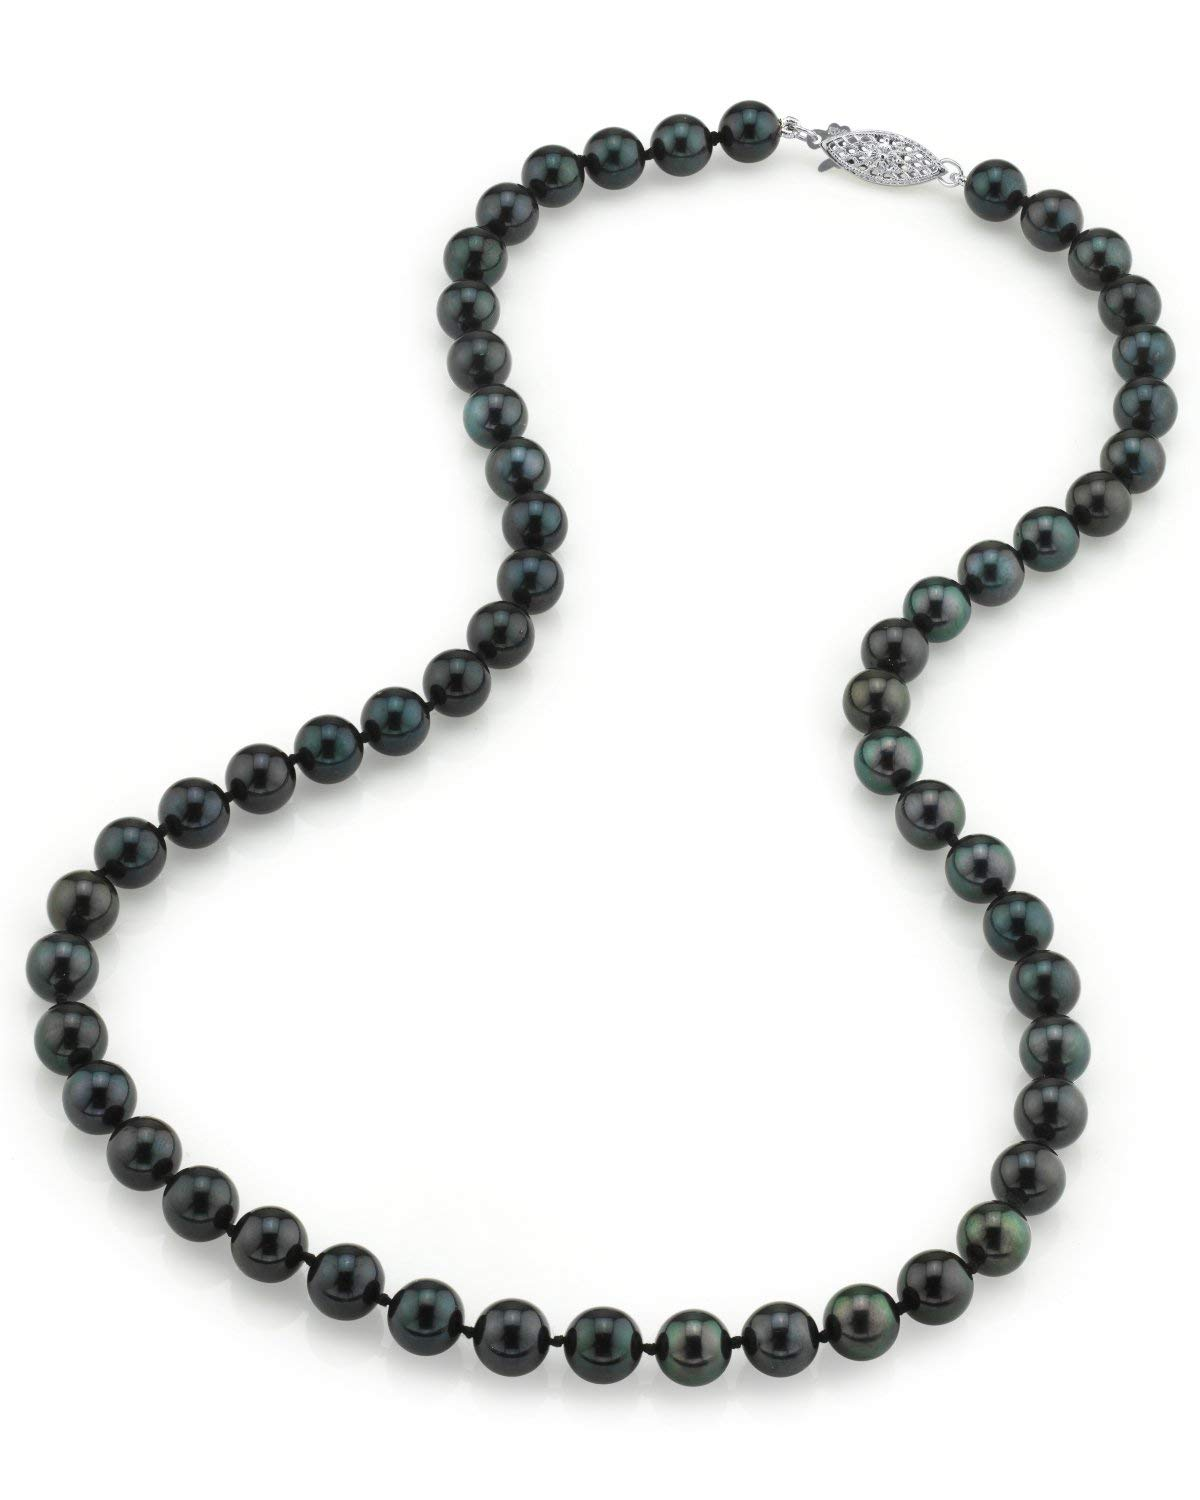 THE PEARL SOURCE 14K Gold 7.0-7.5mm Round Genuine Black Japanese Akoya Saltwater Cultured Pearl Necklace in 18'' Princess Length for Women by The Pearl Source